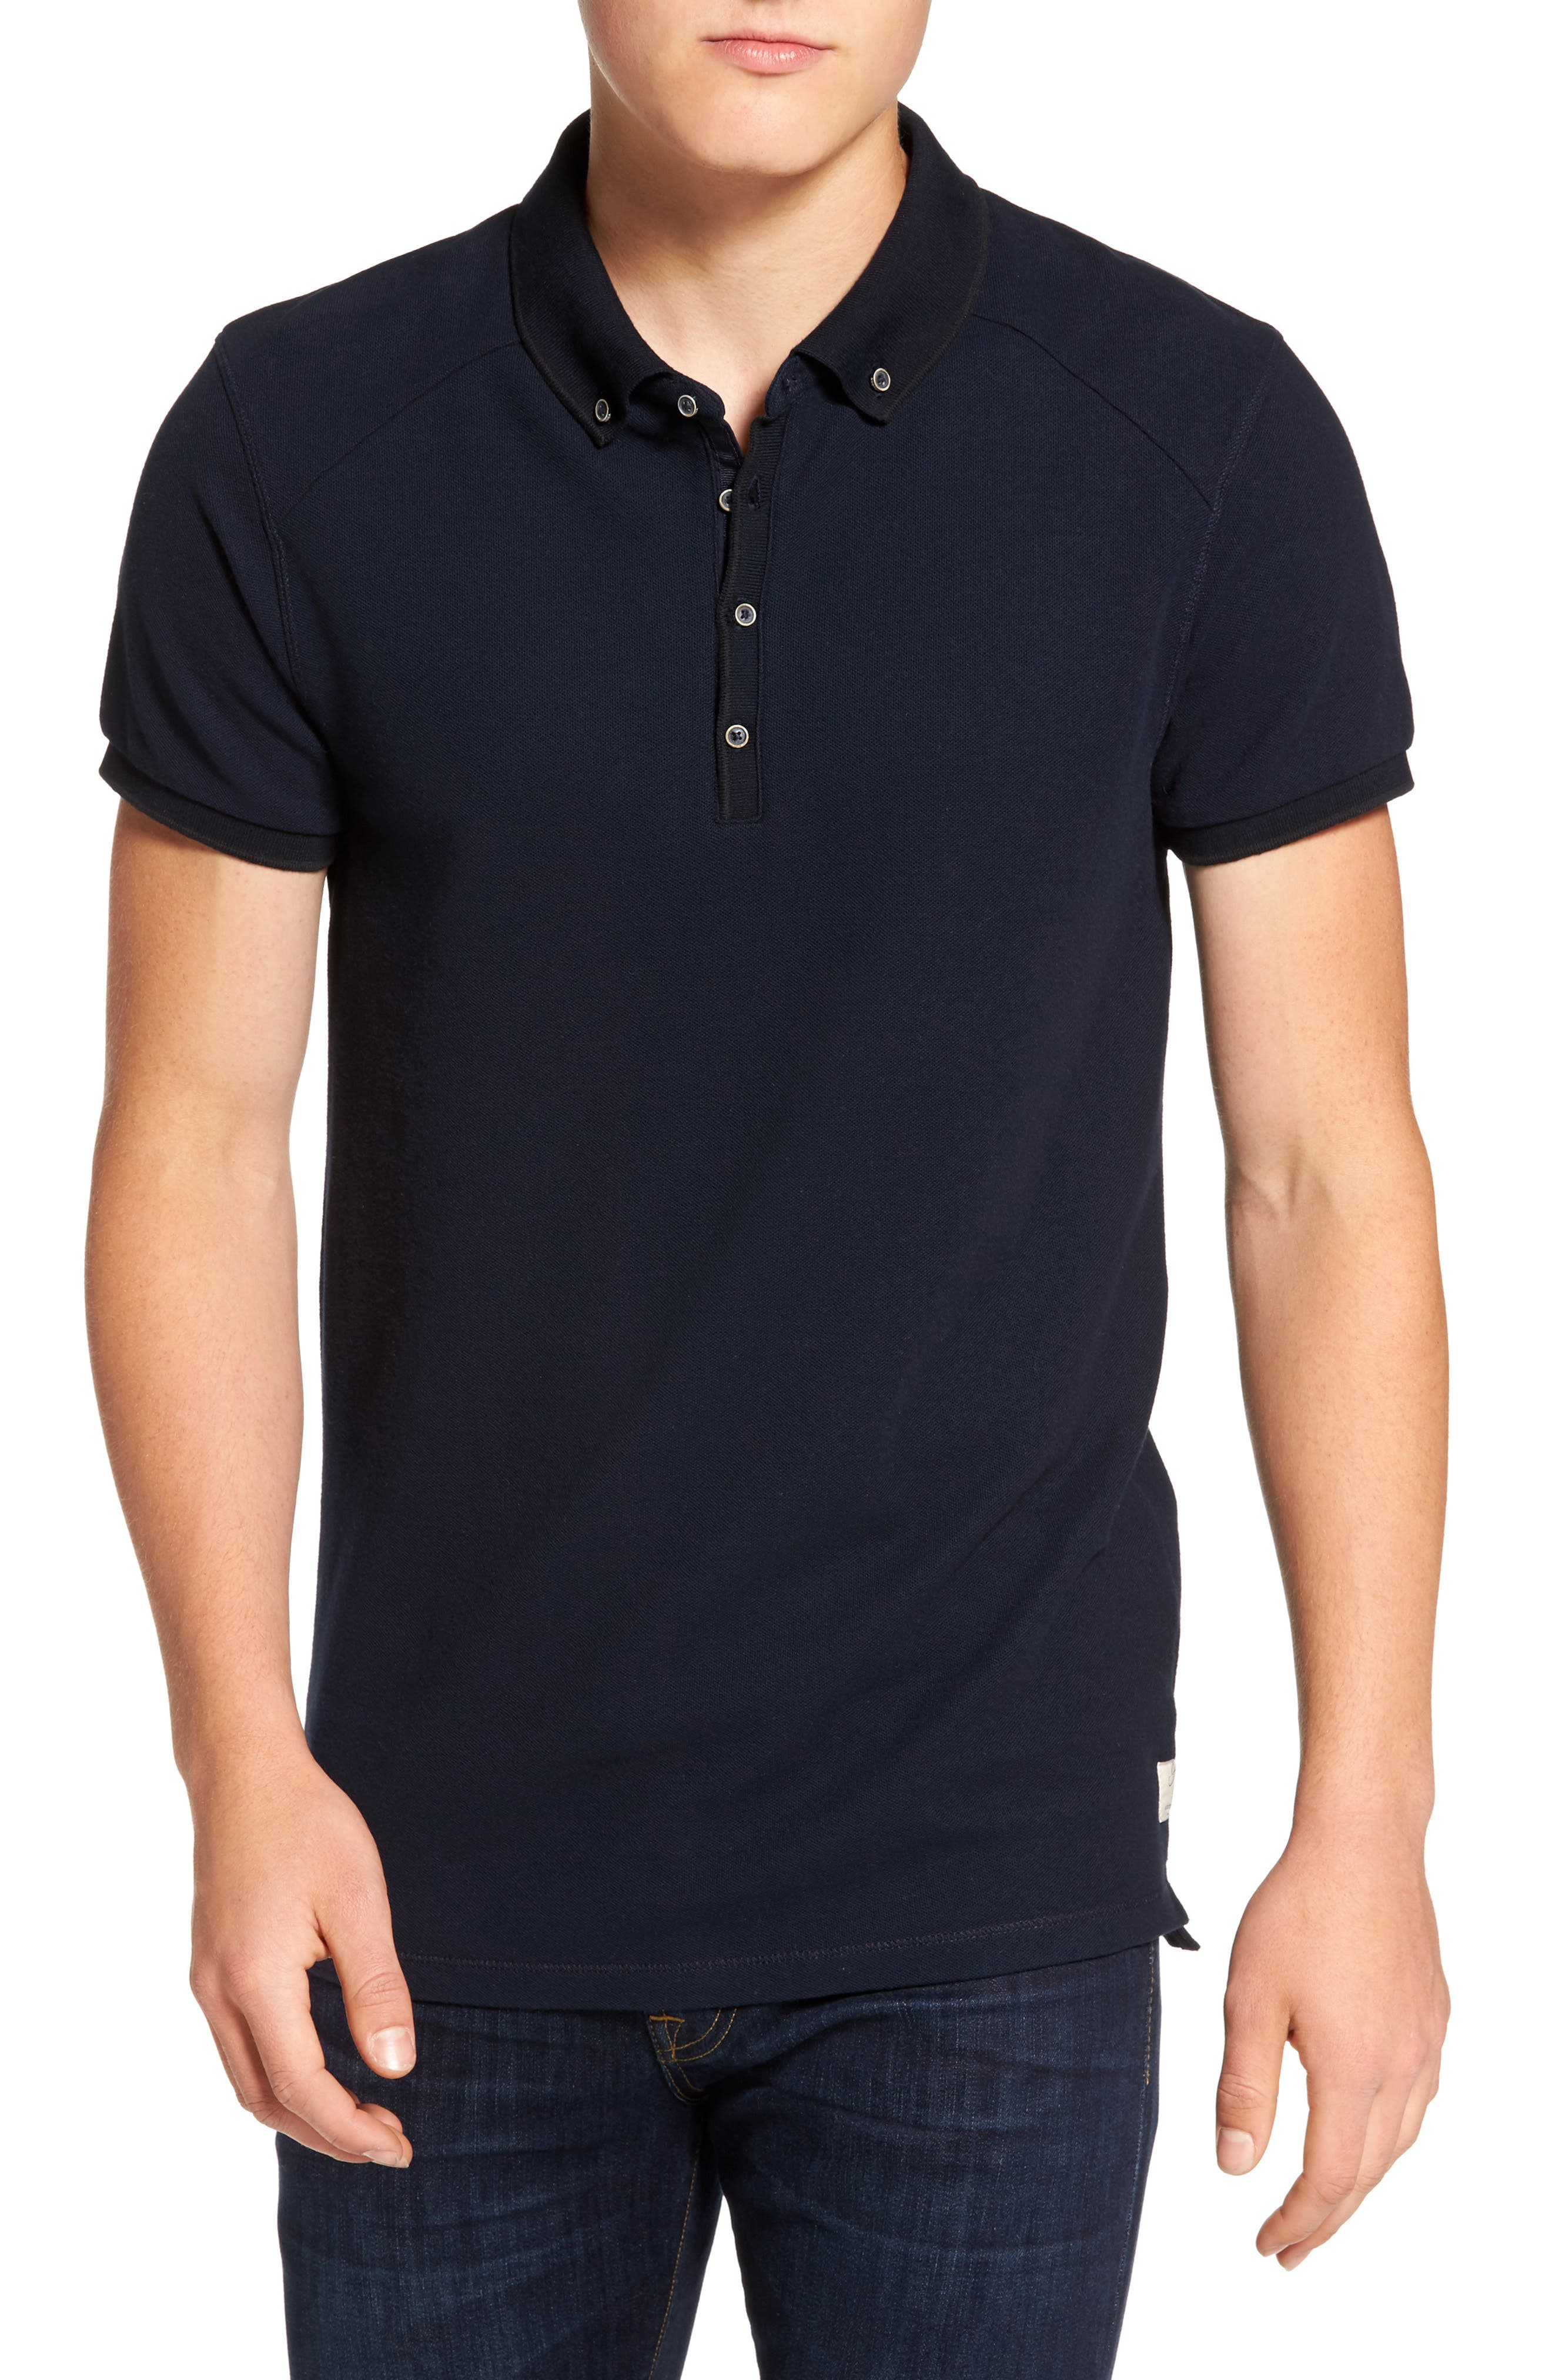 Alternate Image 1 Selected - Scotch & Soda Home Alone Polo